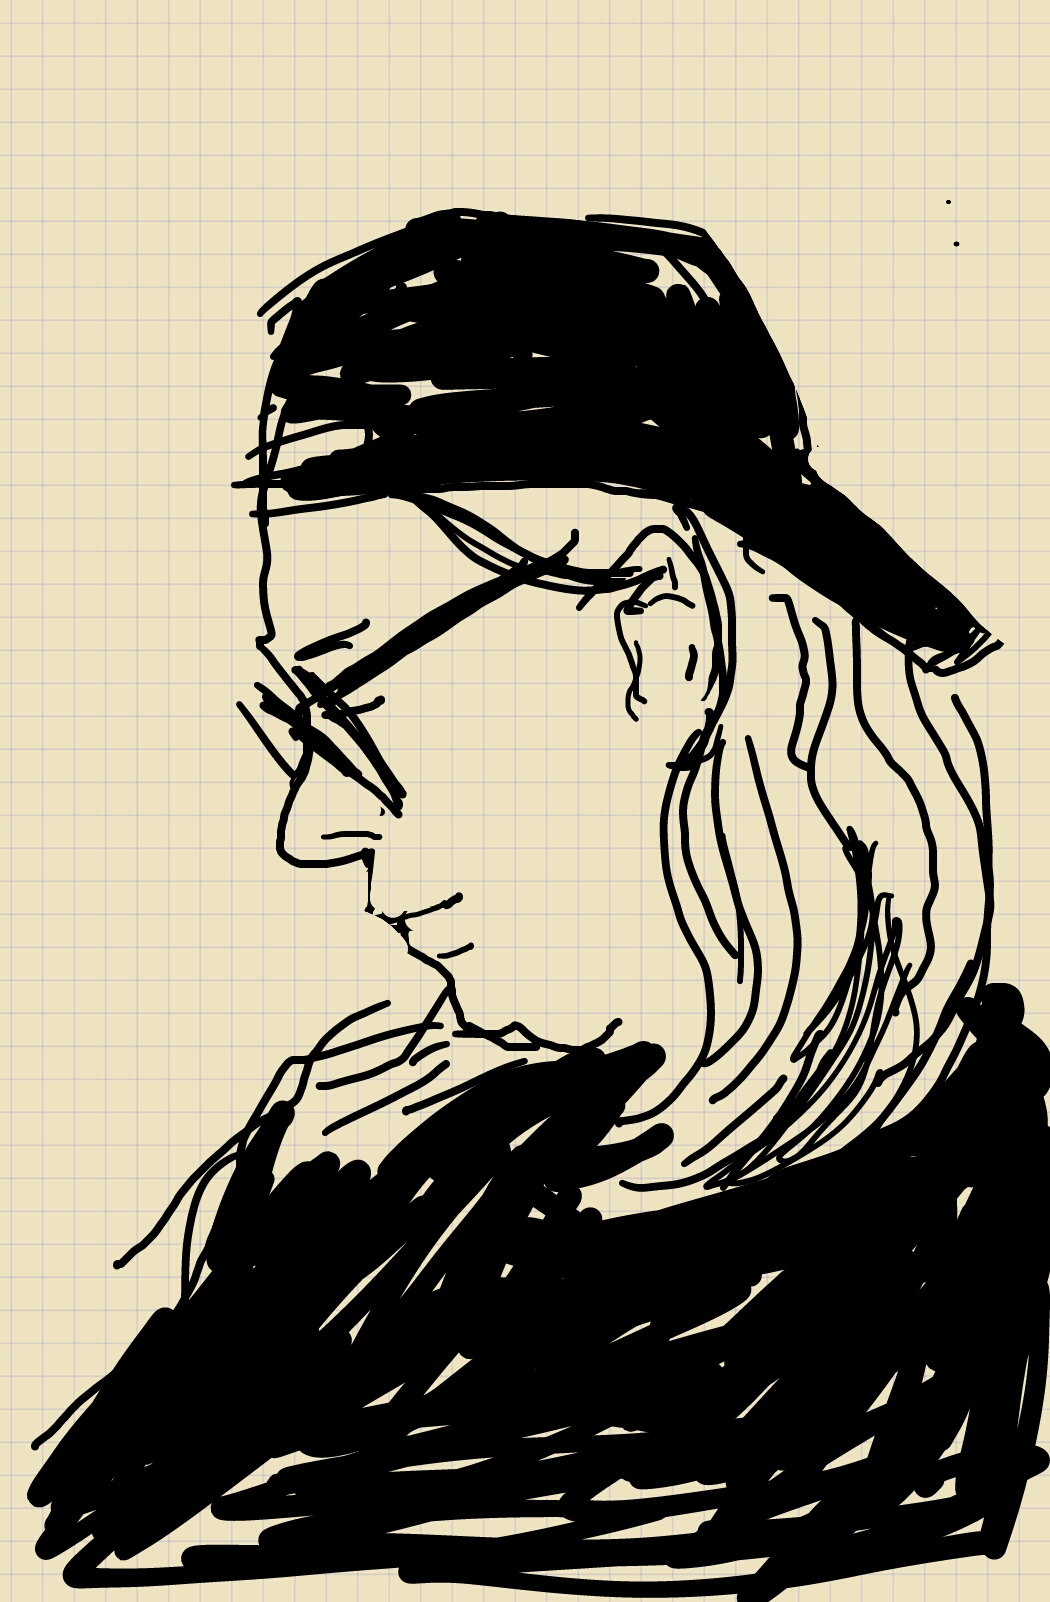 A profile sketch of a woman wearing a cap backwards.